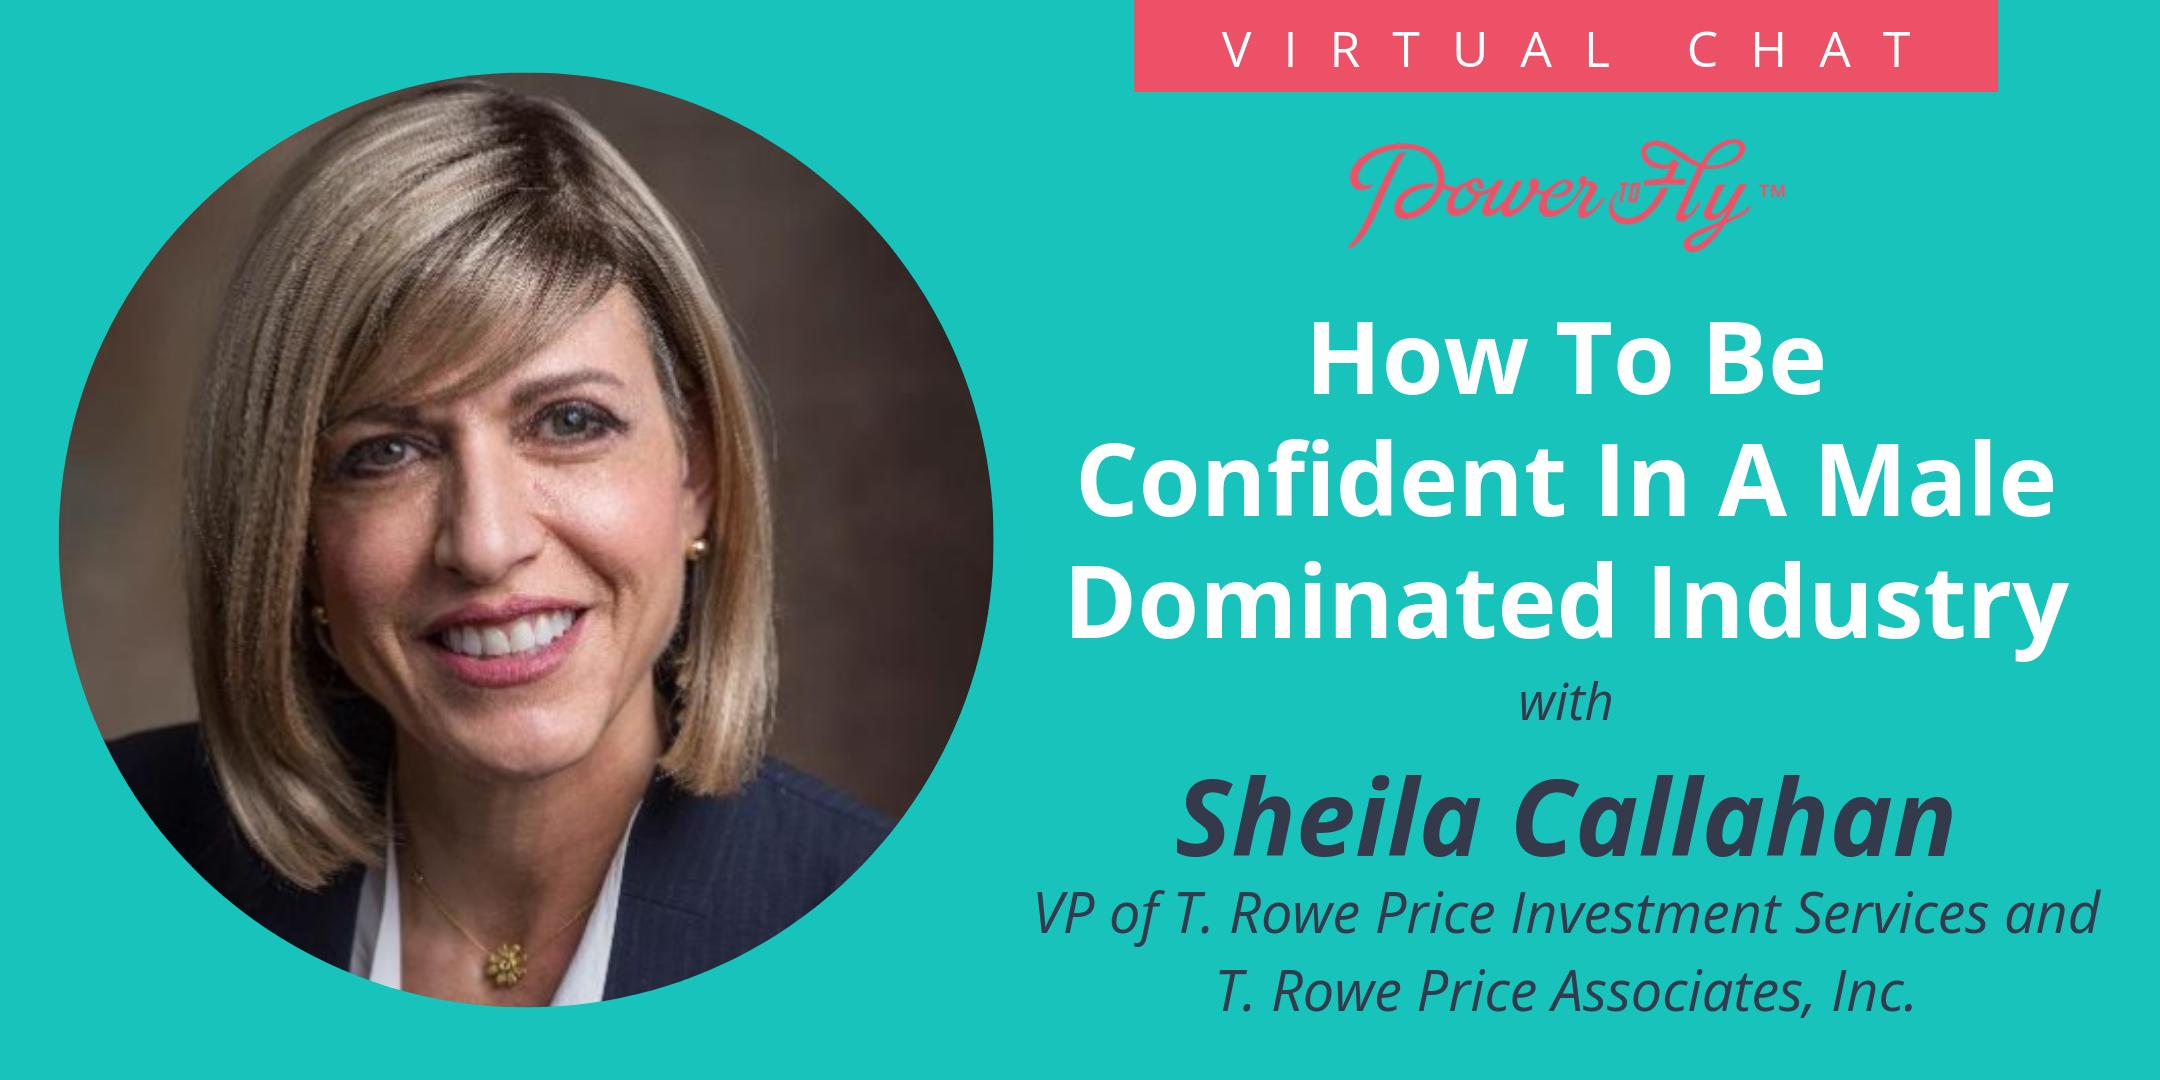 How To Be Confident In A Male Dominated Industry